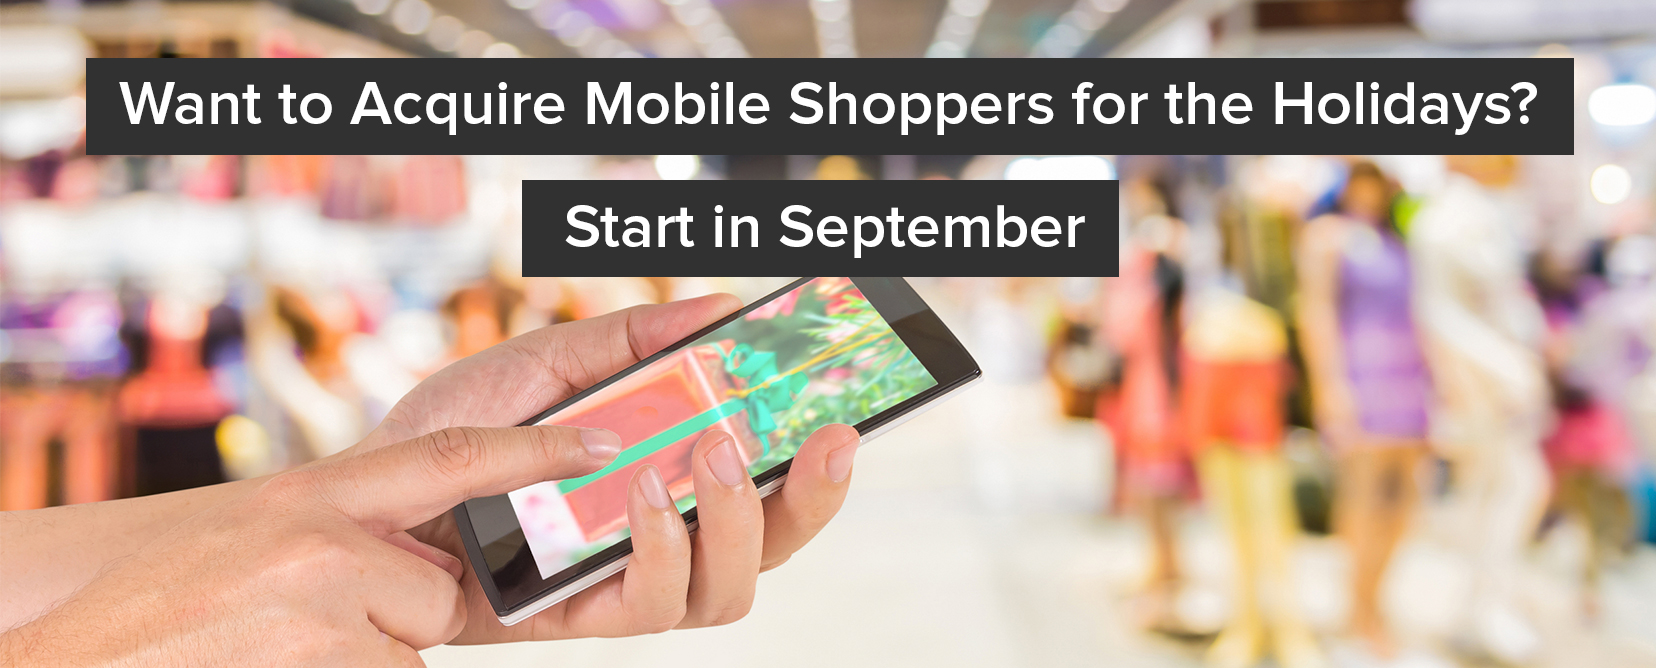 Want to Win Black Friday? Acquire New Mobile Shoppers in September